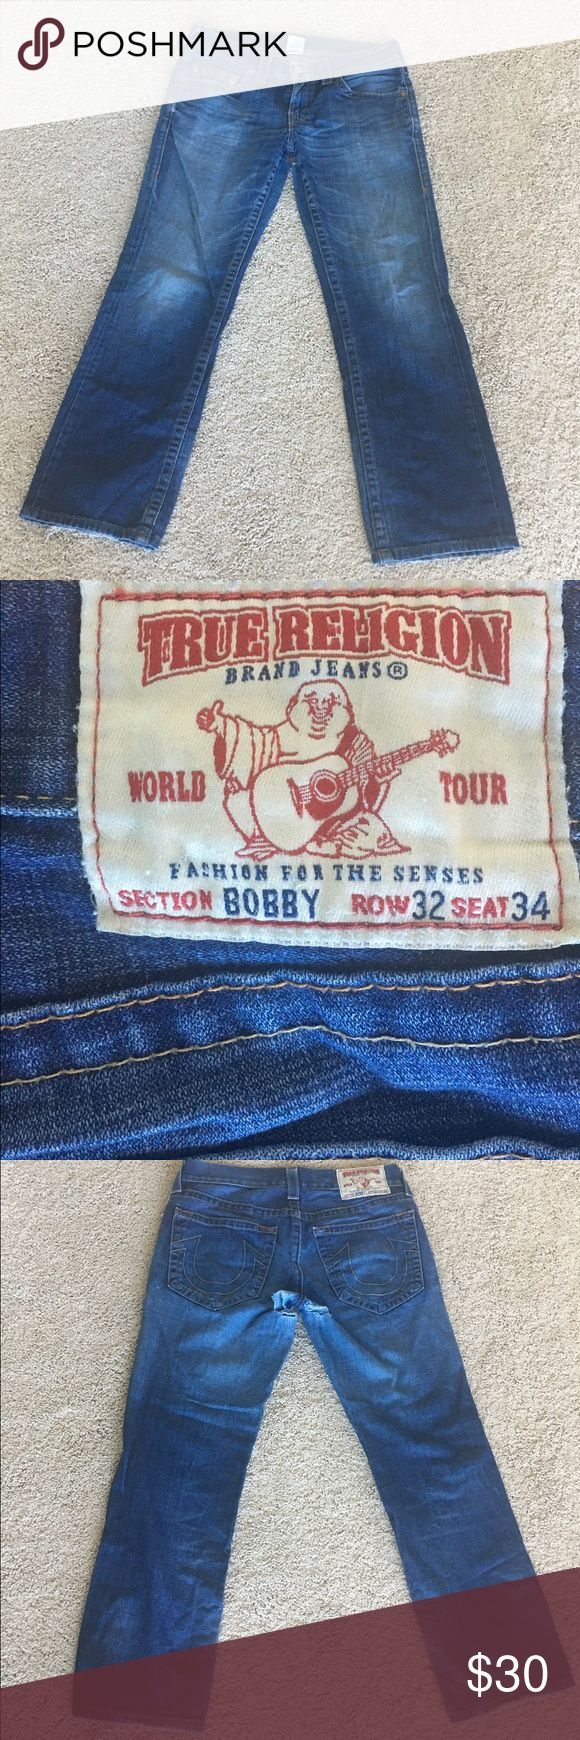 True Religion jeans Sz 32 Men bobby Authentic true religion Jean size 32 seam 34. Section: bobby... it does have a defect (hole), please look at the last picture. True Religion Jeans Bootcut